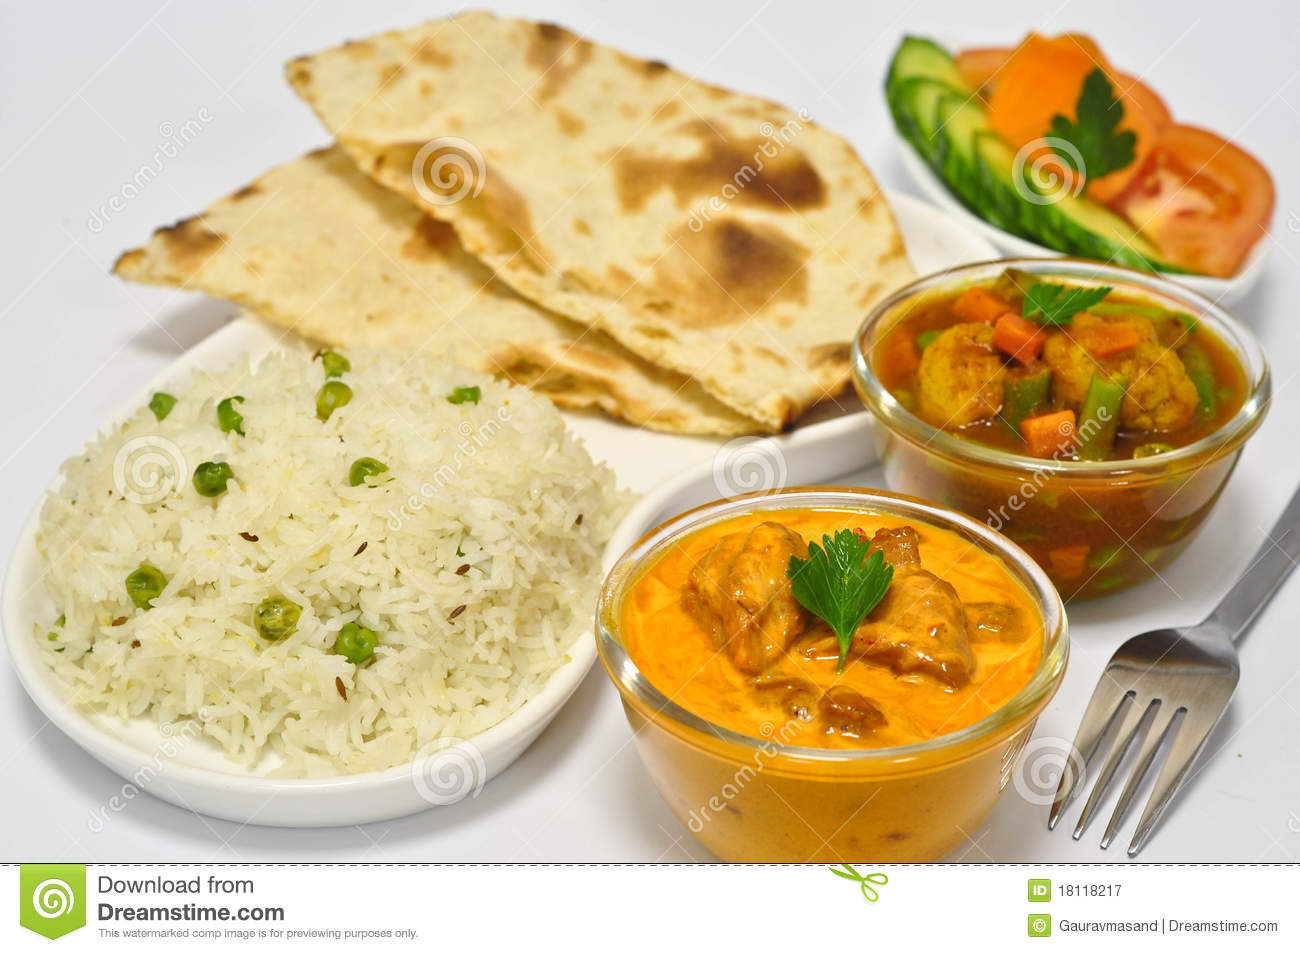 Indian Meal with Butter Chicken